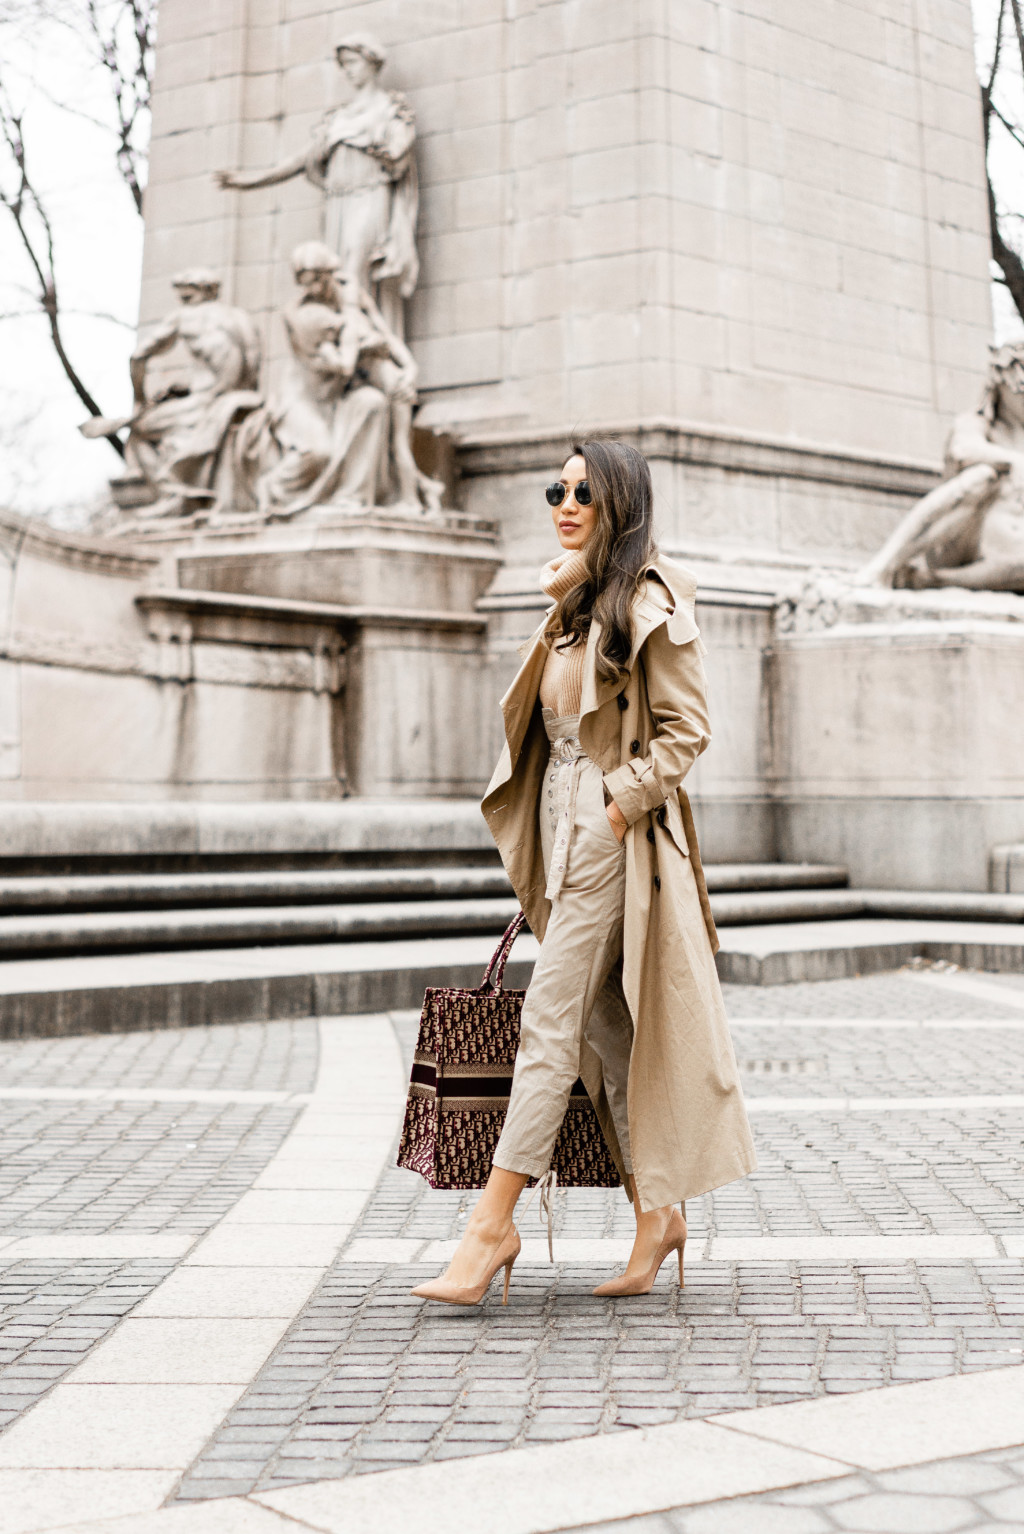 A Winter to Spring Outfit, Transeasonal Pieces 44